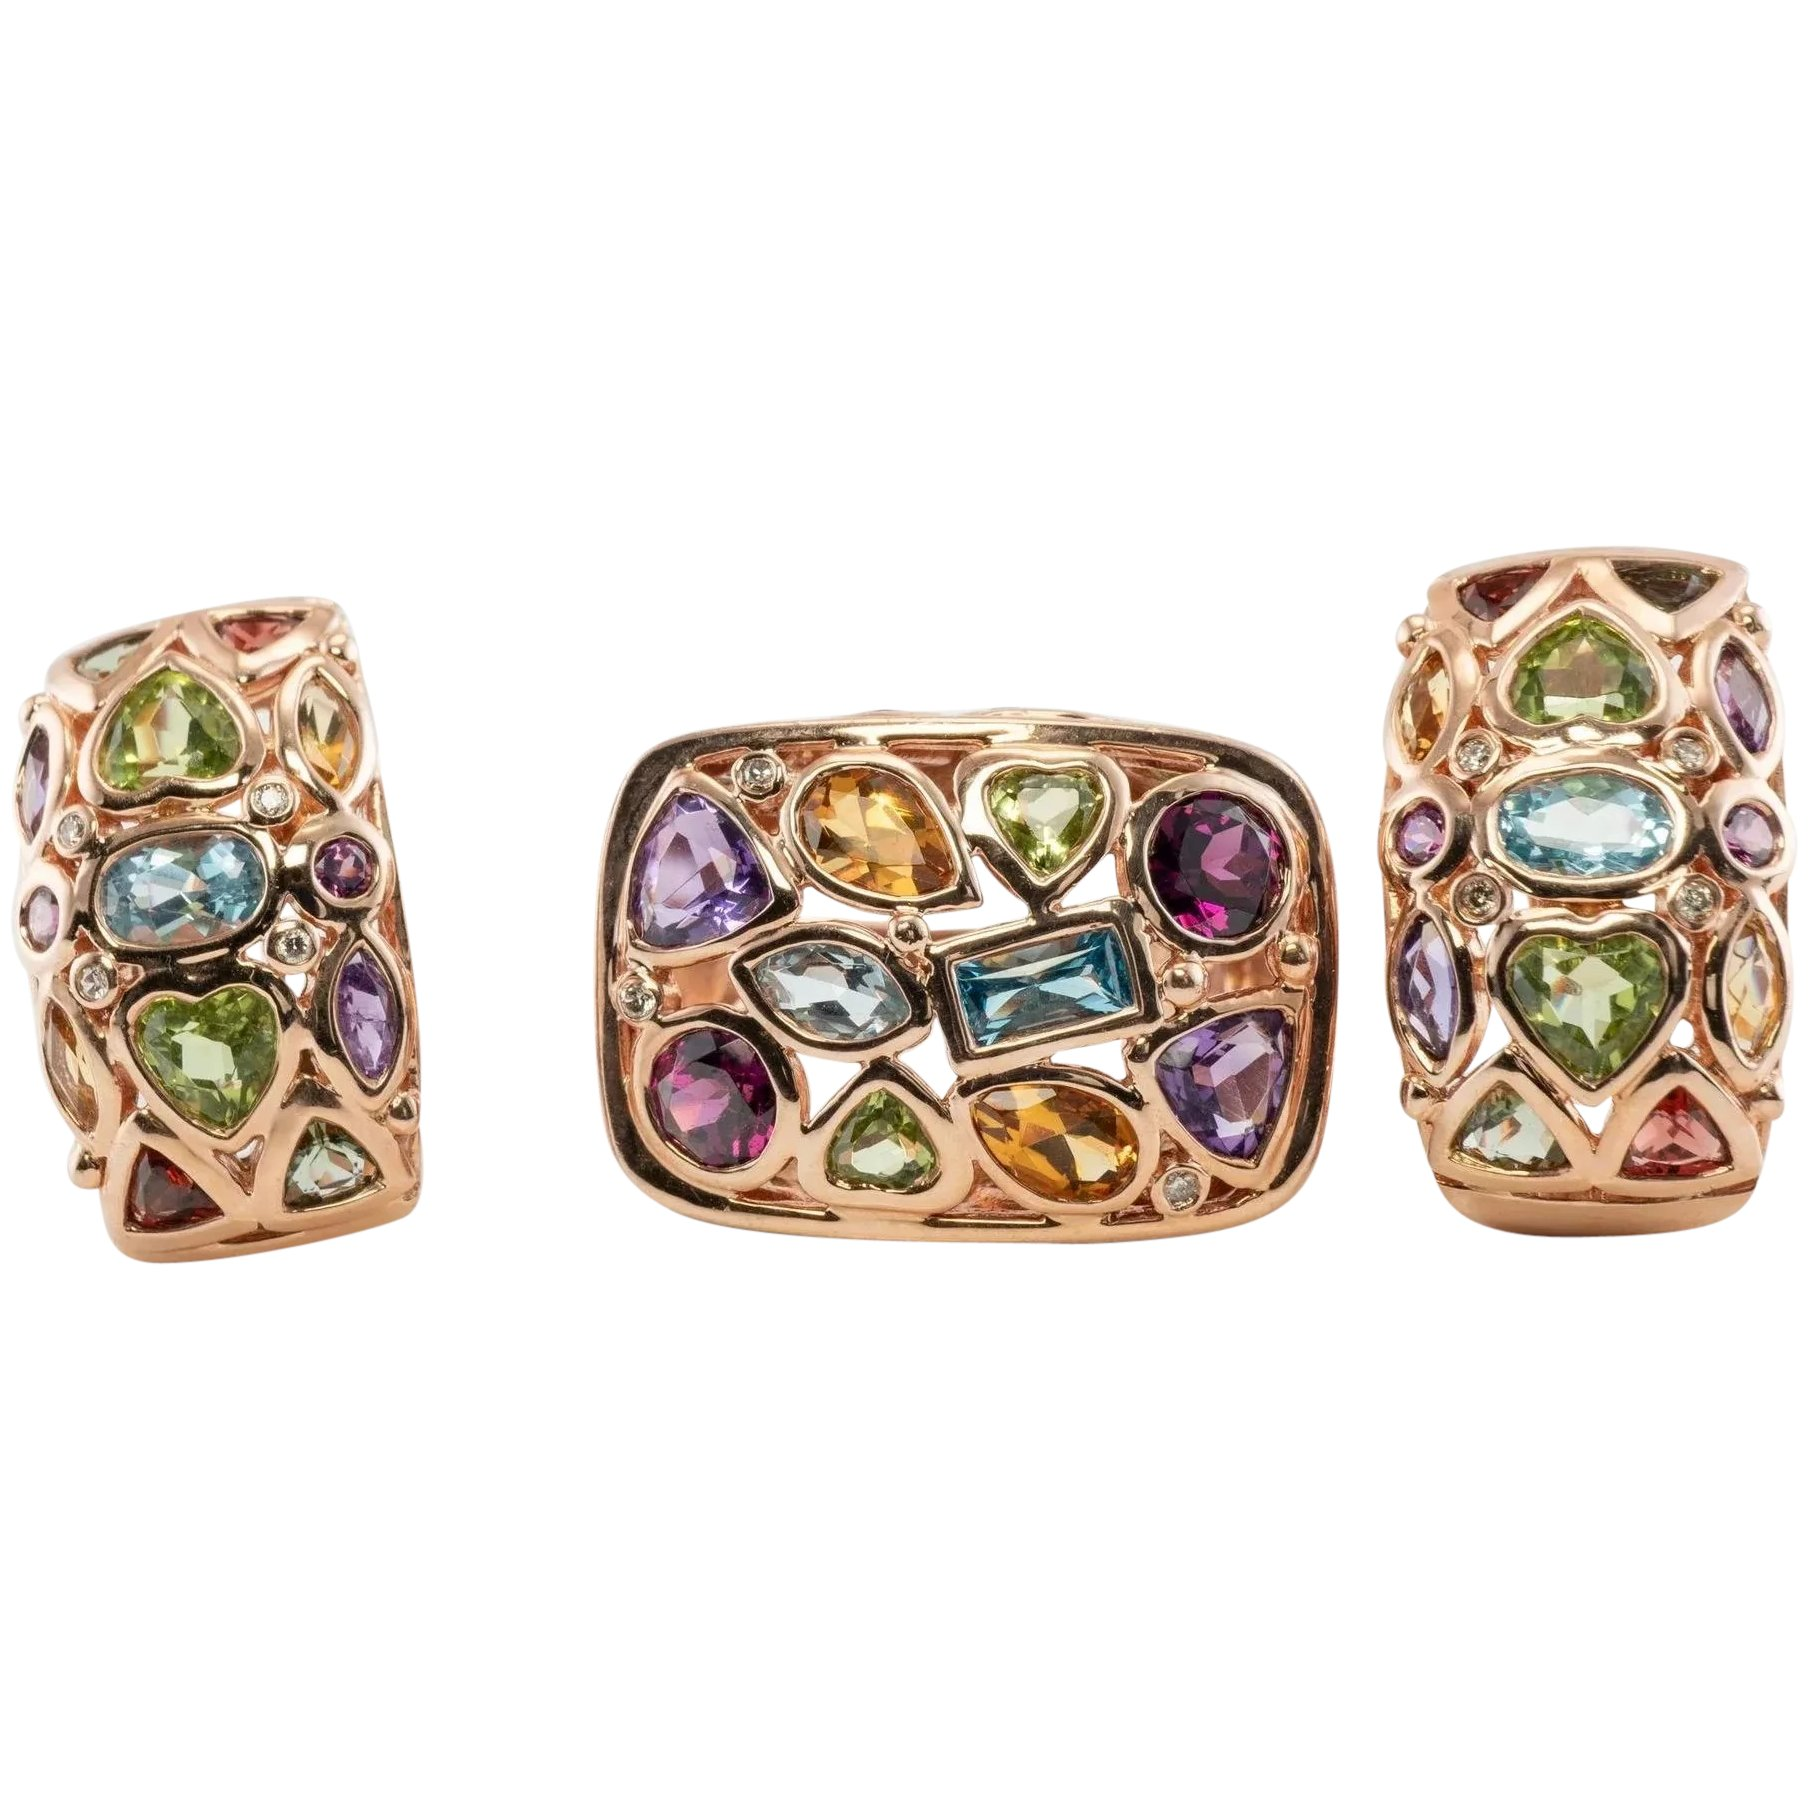 Details about  /Multi-Topaz Earrings Ruby Citrine Amethyst Peridot Jewelry 14K Rose Gold Plated